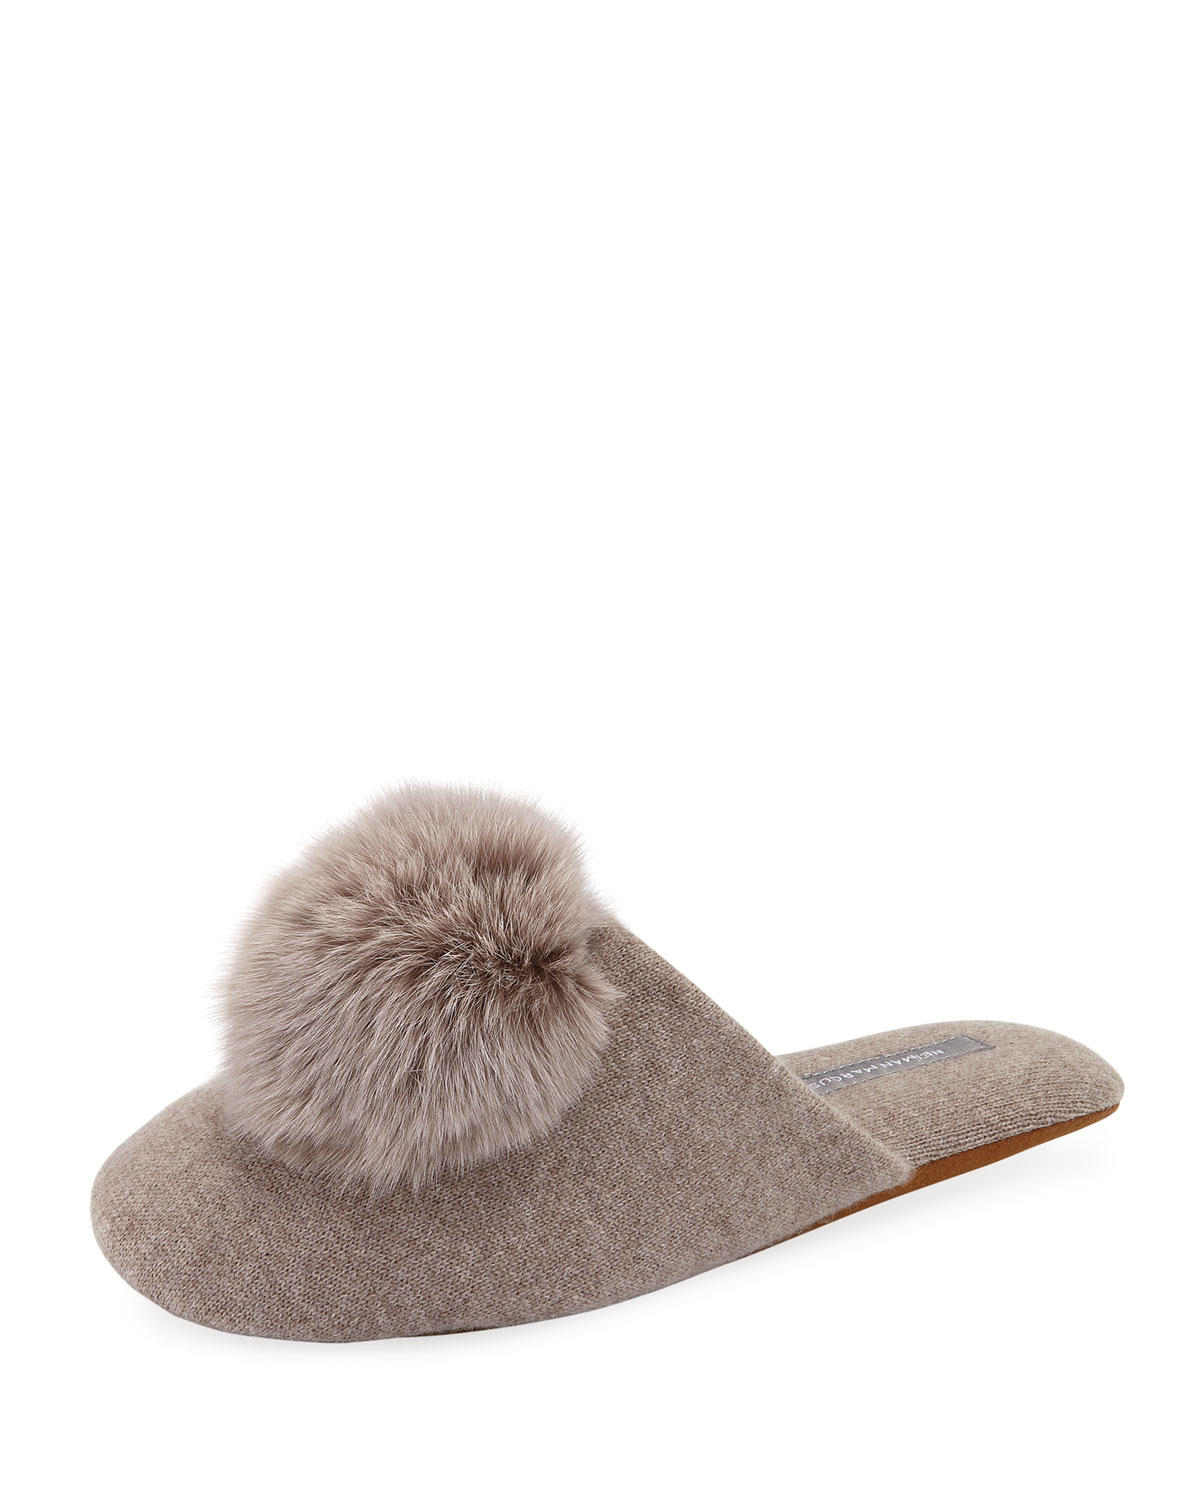 NEW LOOK LADIES CREAM KNITTED FUR FABRIC LINED SLIPPERS SIZE LARGE NEW